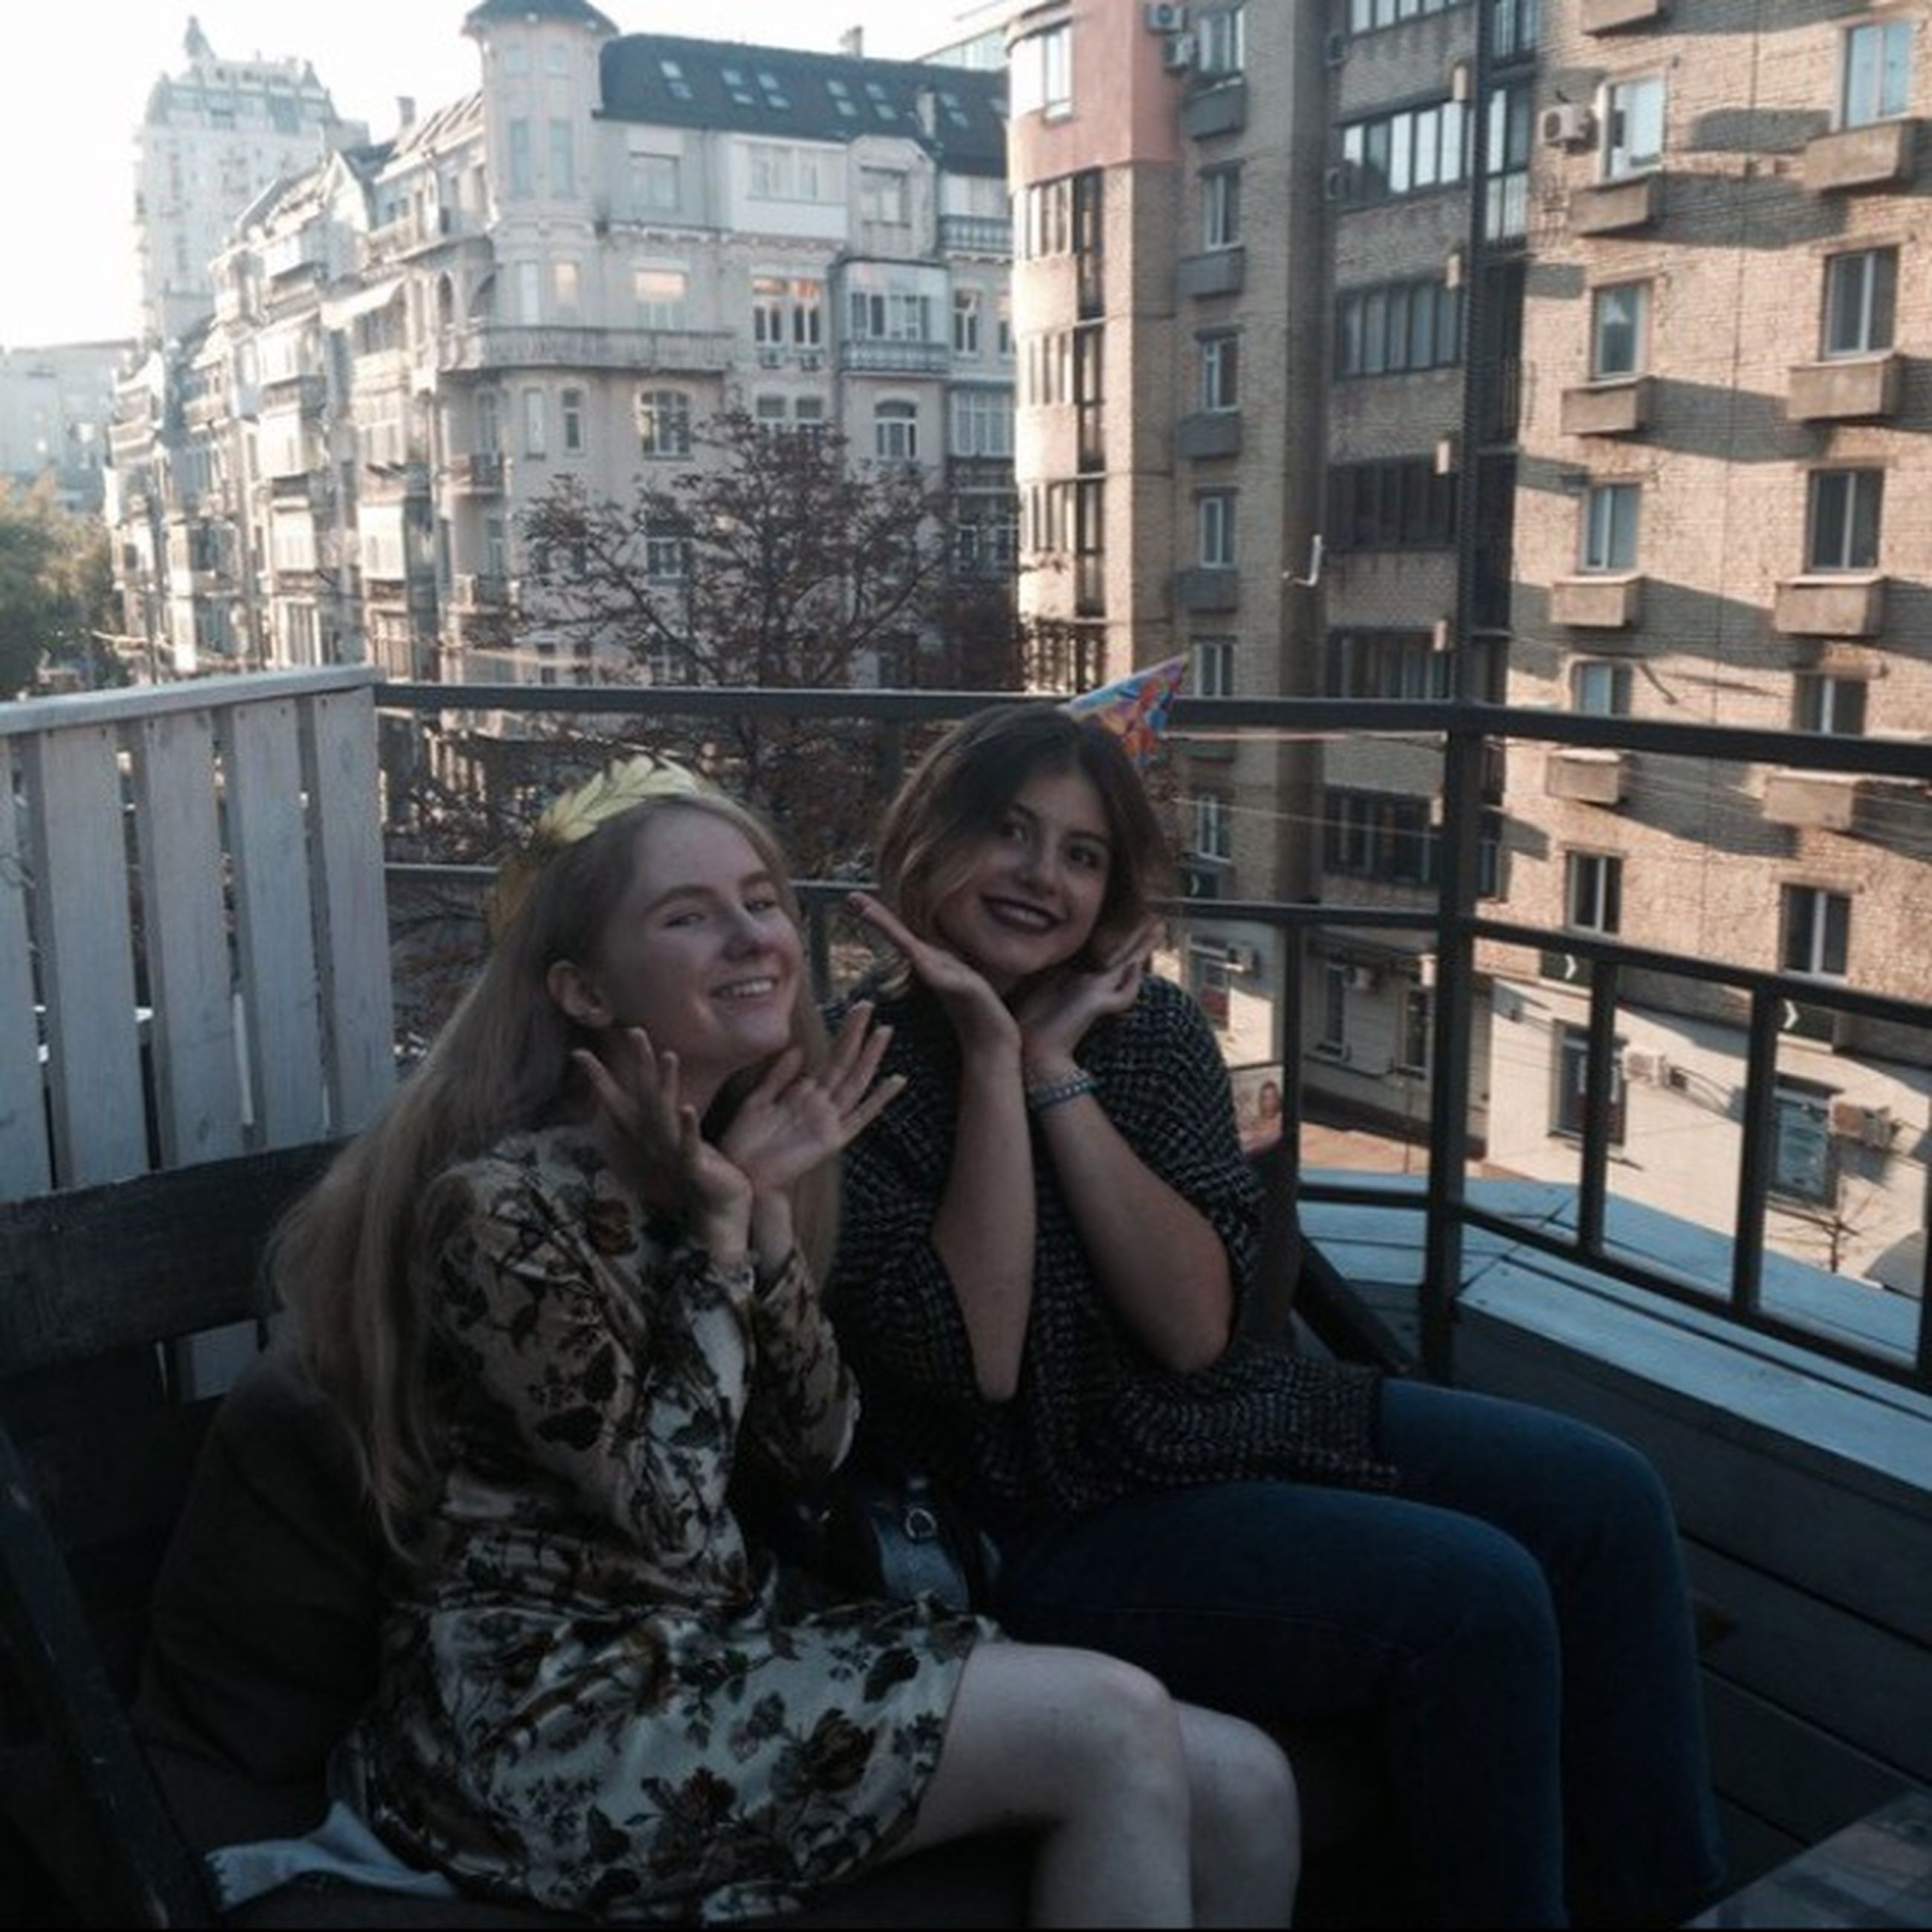 togetherness, building exterior, city, architecture, friendship, young adult, looking at camera, bonding, built structure, young women, portrait, love, casual clothing, lifestyles, city life, smiling, leisure activity, happiness, toothy smile, front view, person, long hair, embracing, enjoyment, beautiful people, outdoors, affectionate